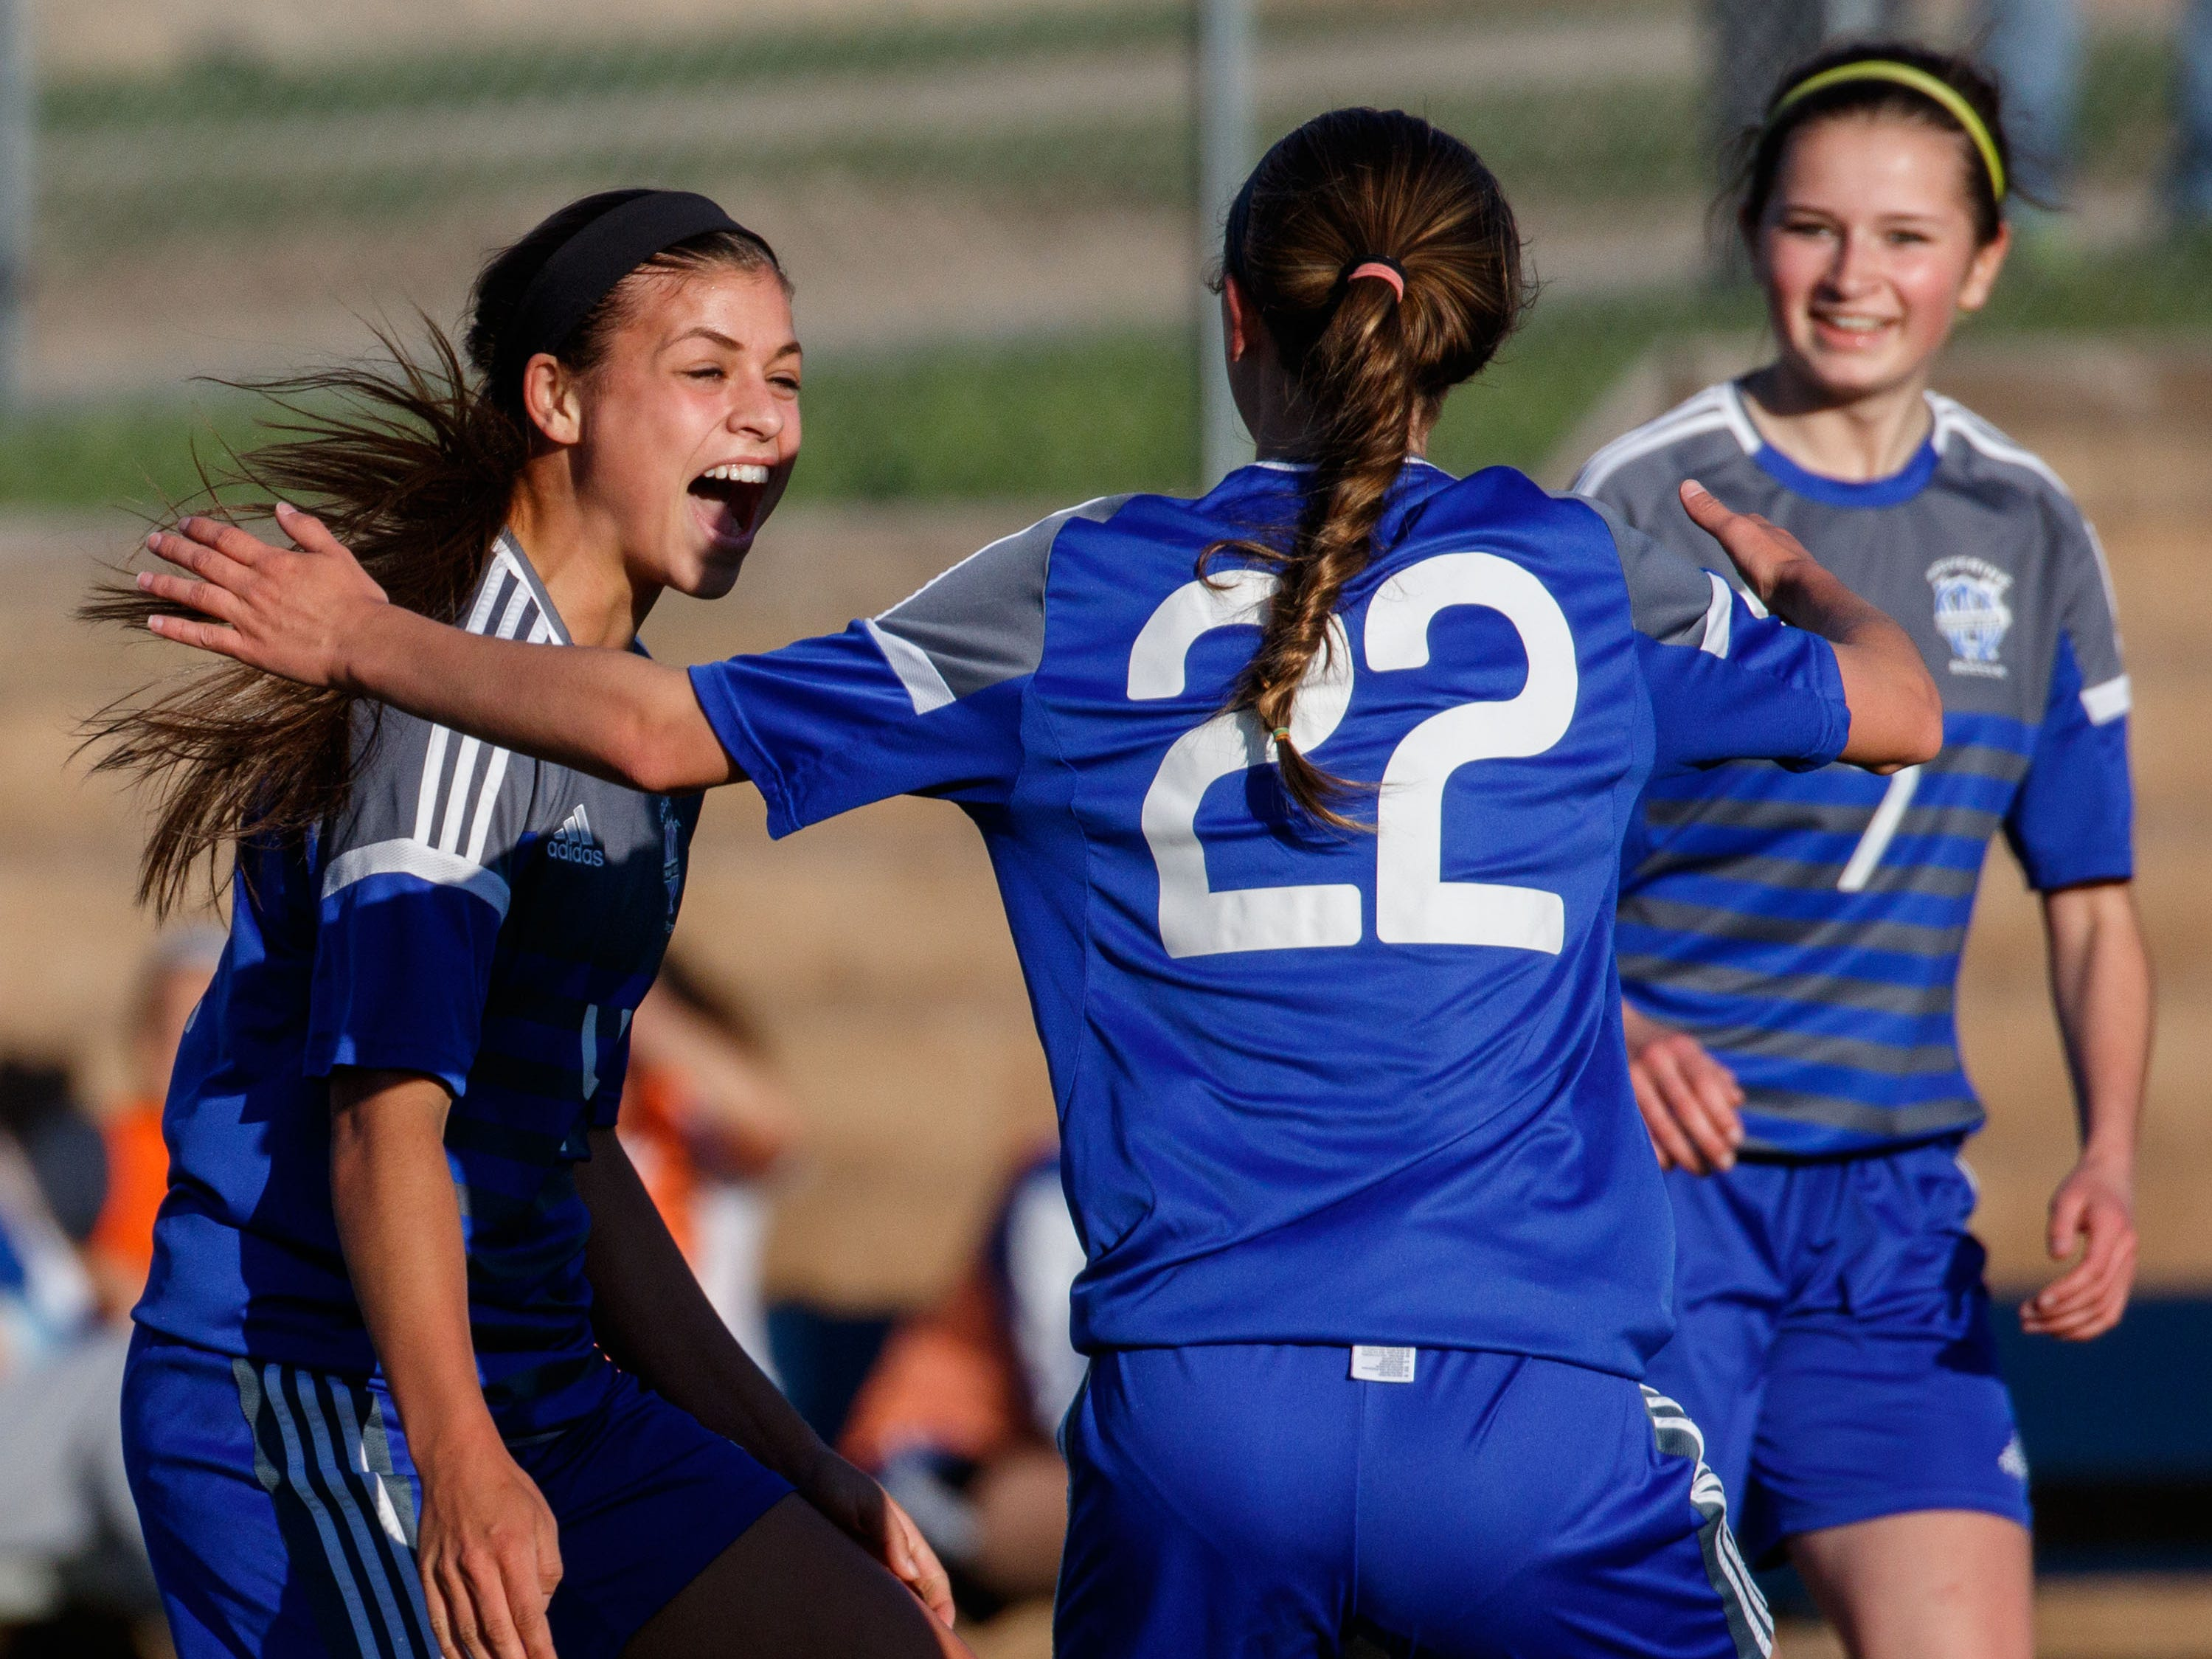 Waukesha West senior Dani Rhodes (left) celebrates her first of three goals on the night with teammates Josie Zindler (22) and Taylor Wiegert (7) during the match against Catholic Memorial at Carroll College on Tuesday, May 17, 2016.